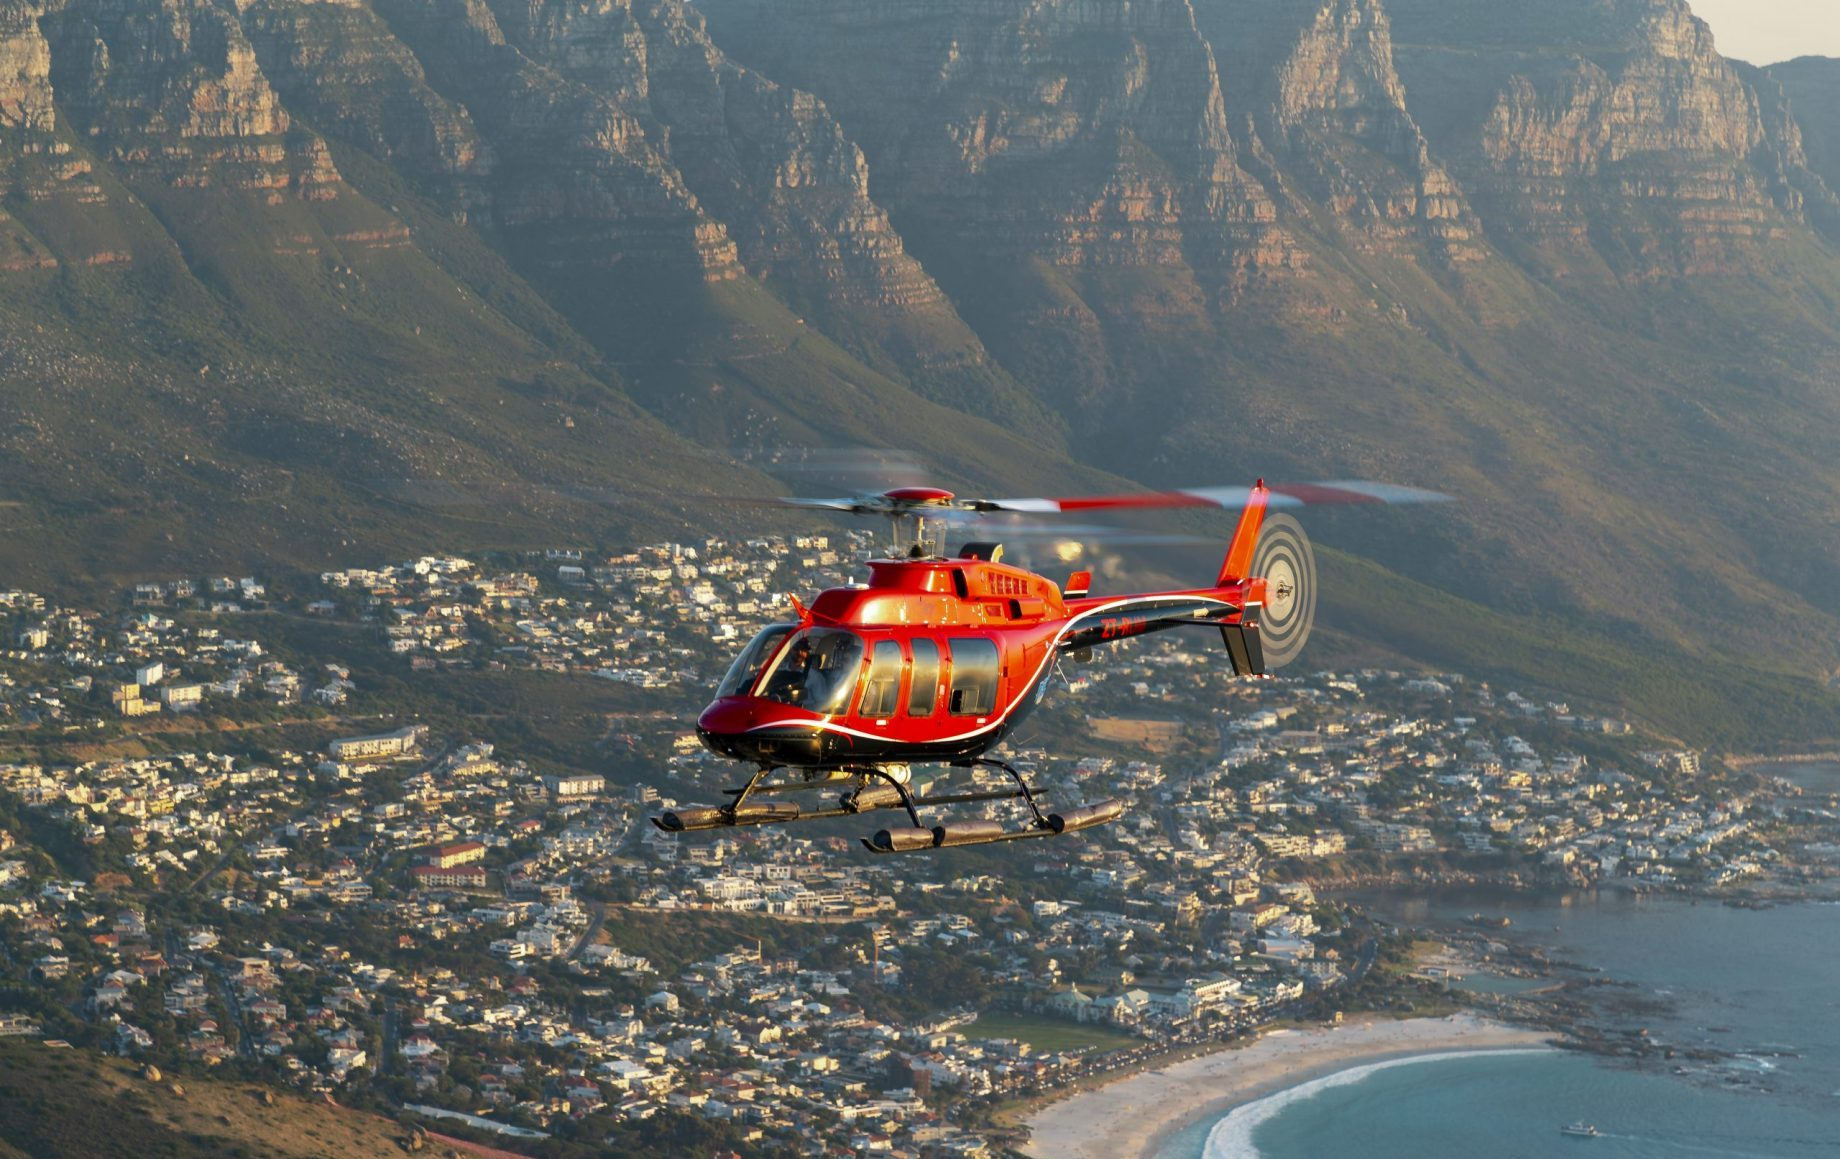 A helicopter above the cape town coast